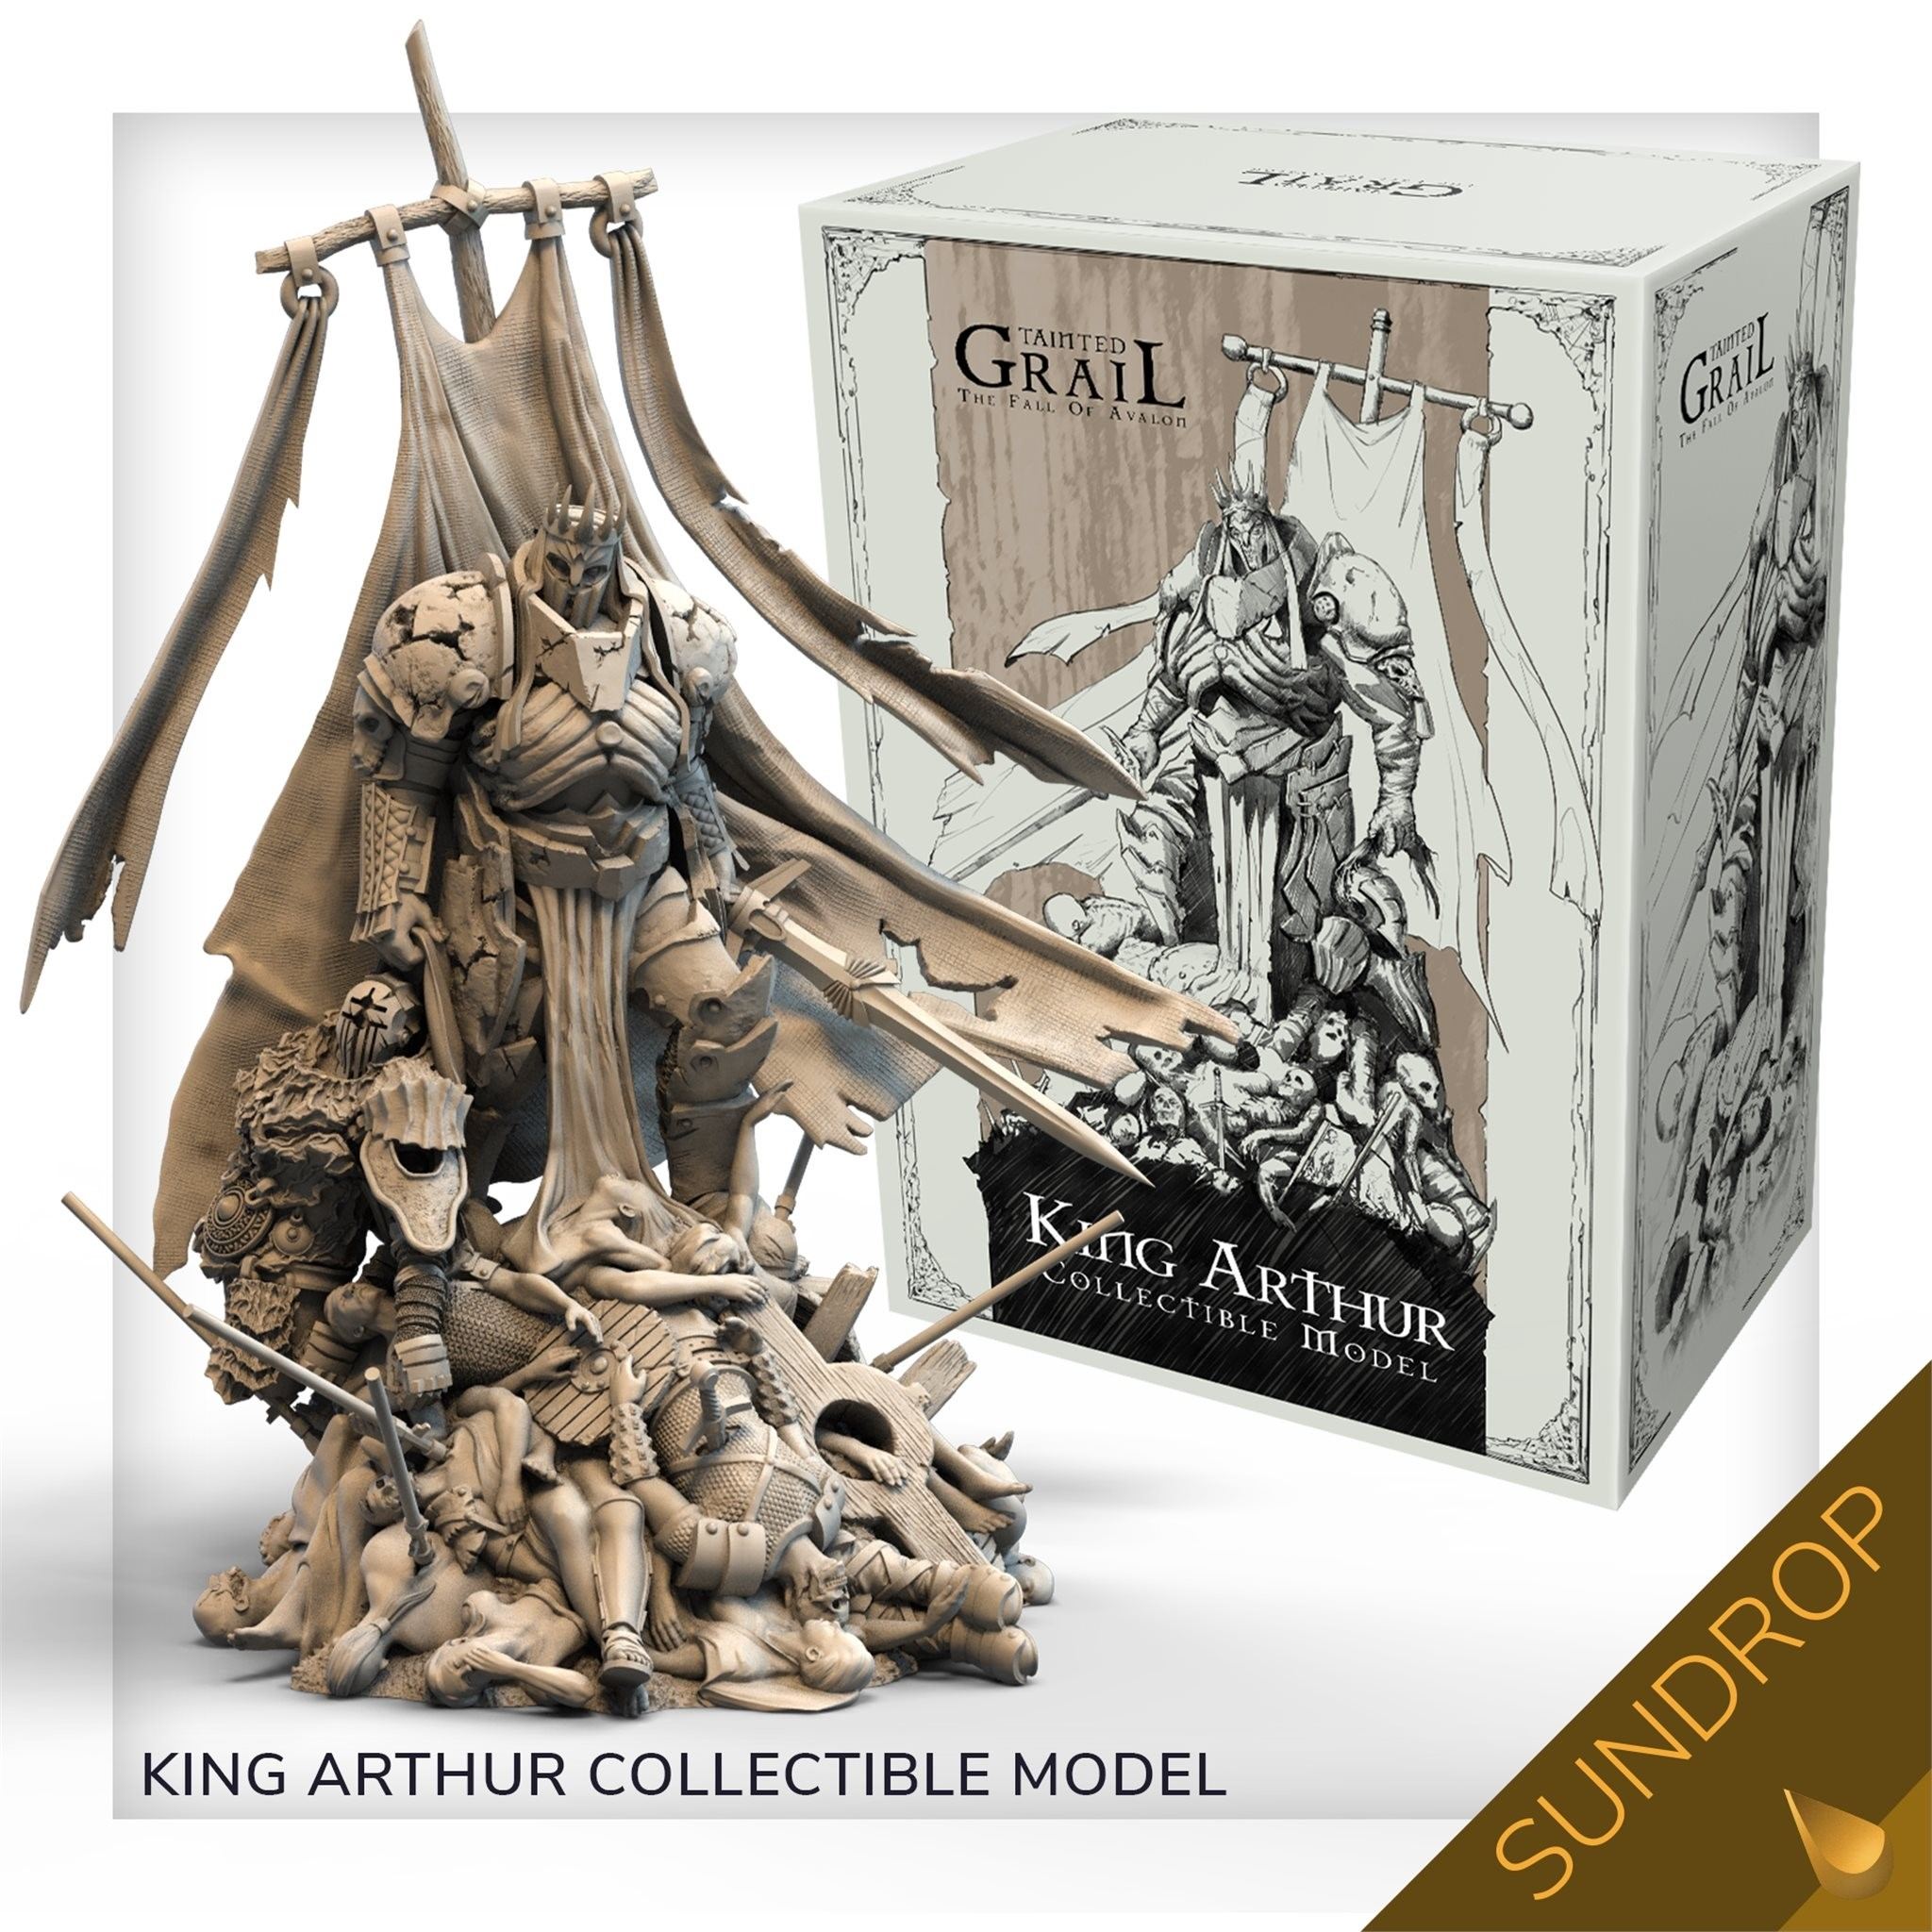 Tainted Grail: The Fall of Avalon King Arthur (Plastic) Sundrop